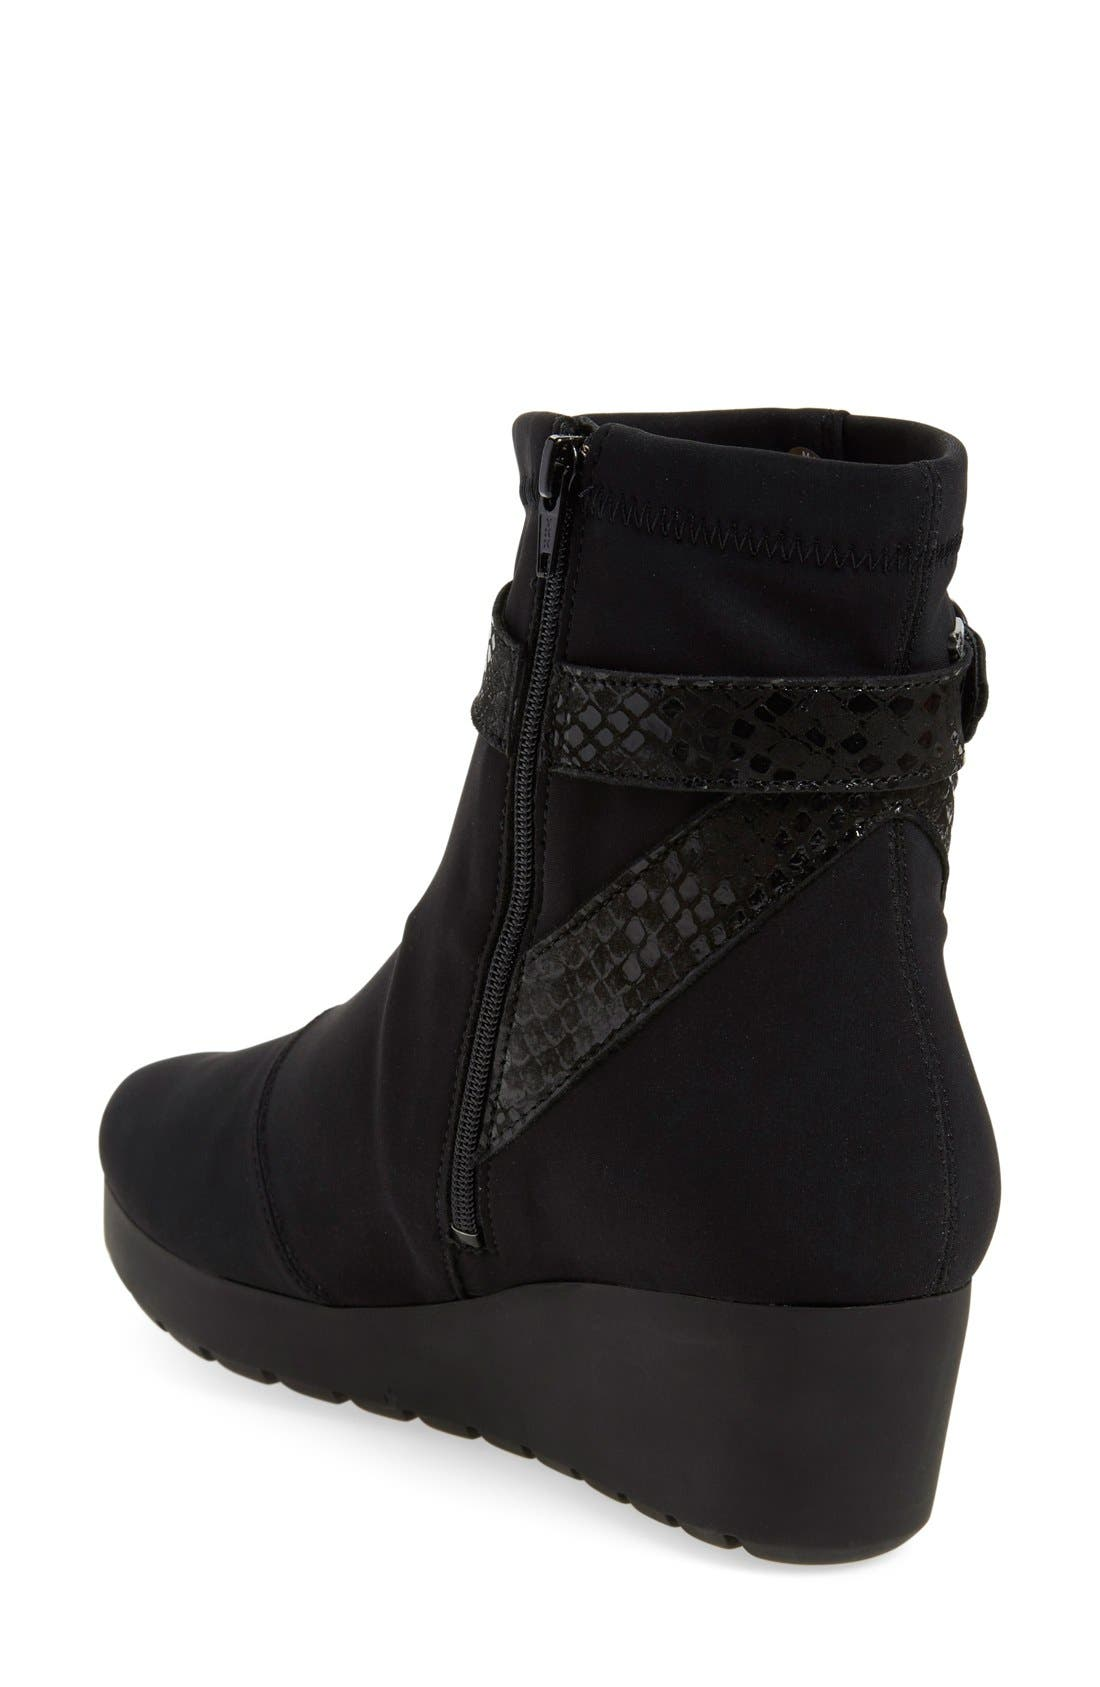 'Tyba' Waterproof Wedge Bootie,                             Alternate thumbnail 2, color,